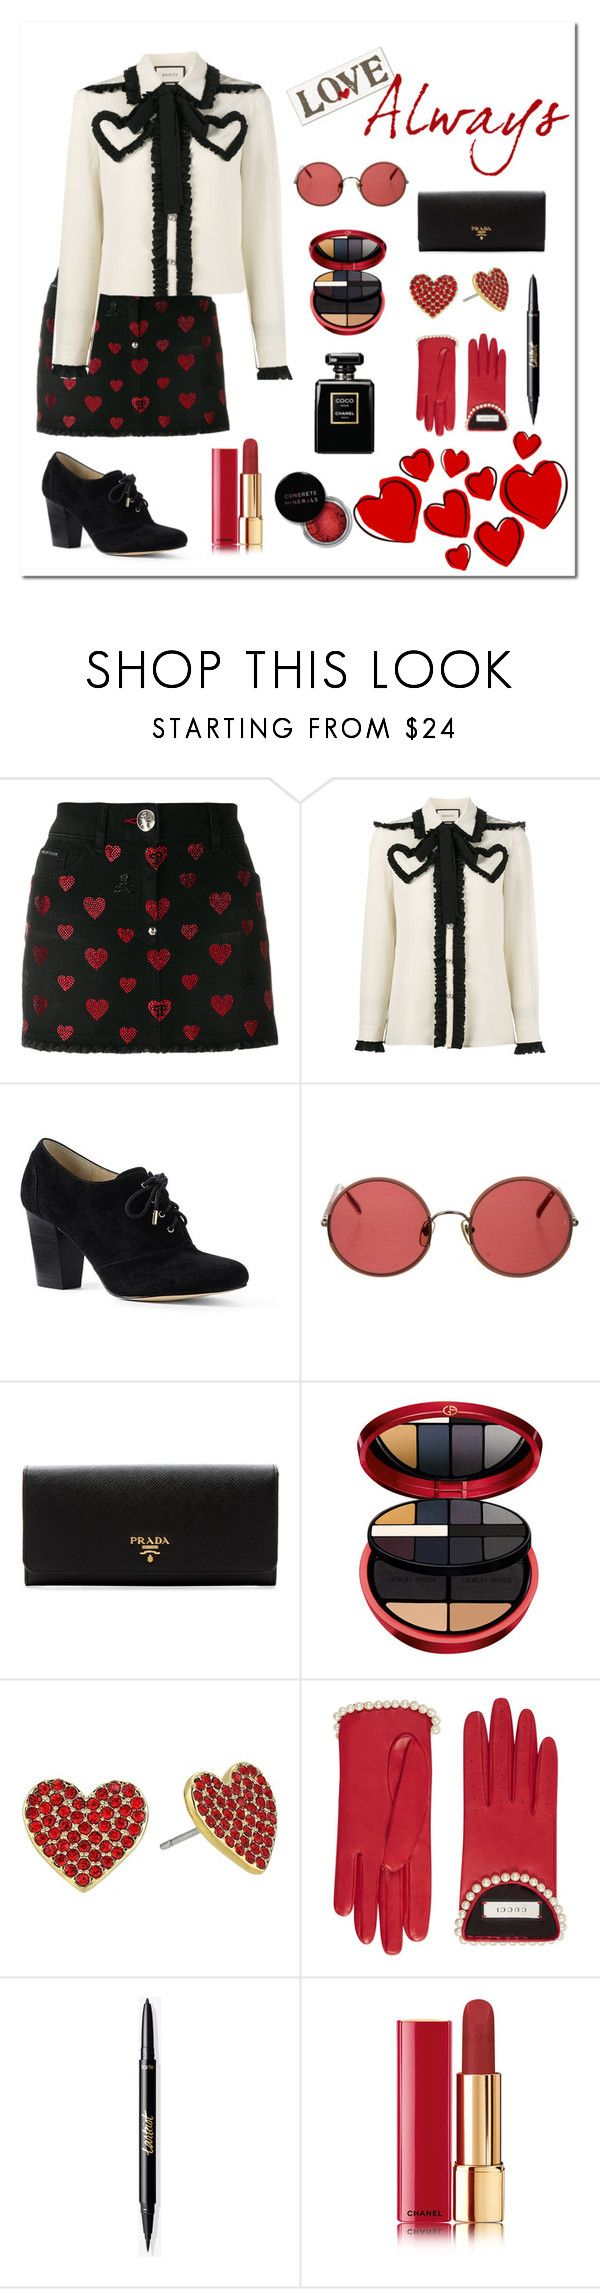 """Valentine's Day"" by cafoxx ❤ liked on Polyvore featuring Philipp Plein, Gucci, Lands' End, Sunday Somewhere, Prada, Armani Beauty, Kate Spade, Chanel and Concrete Minerals"